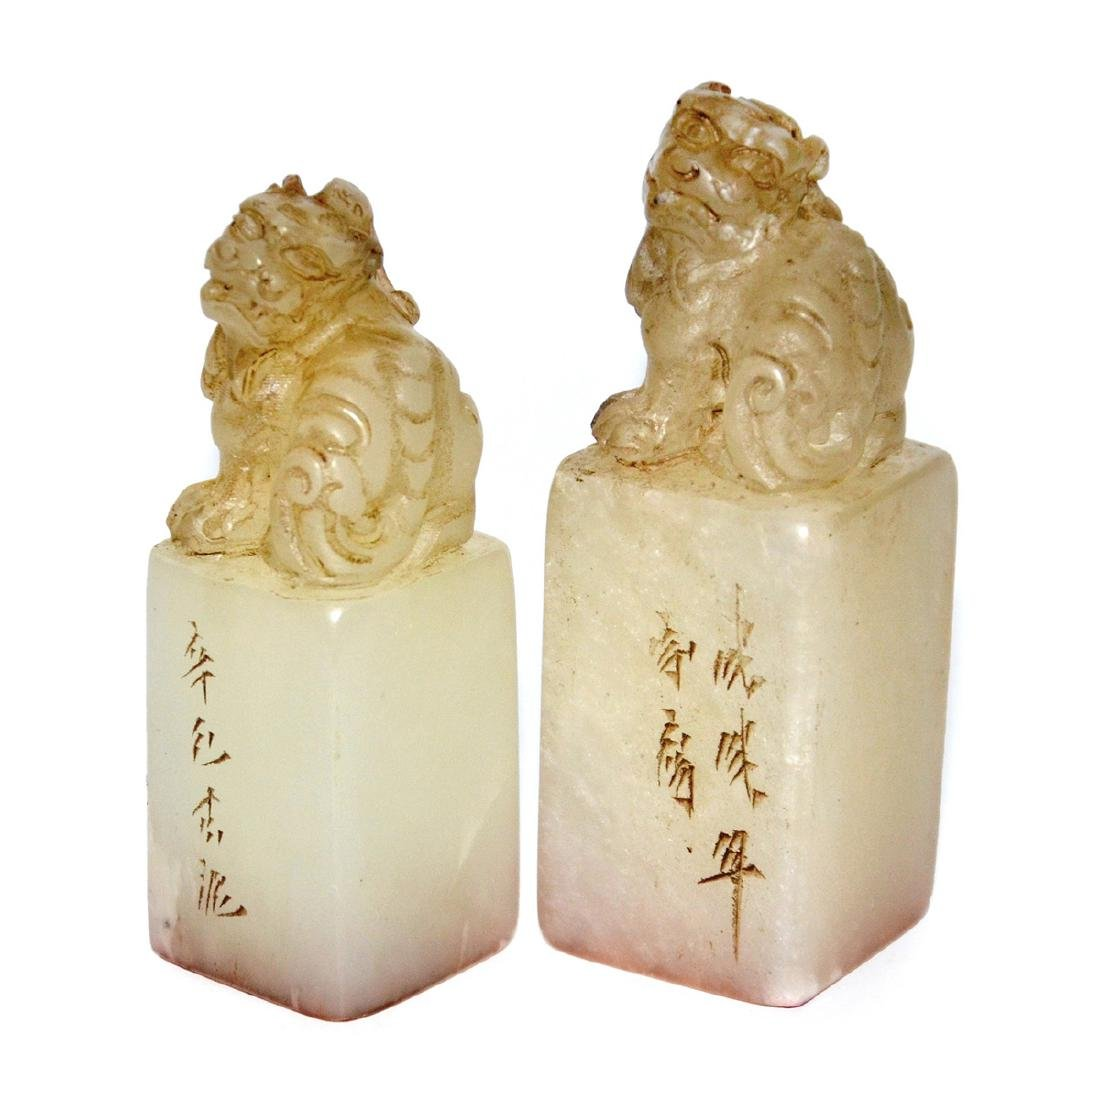 Two Furong Stone Seals with Bixie Knops - 2